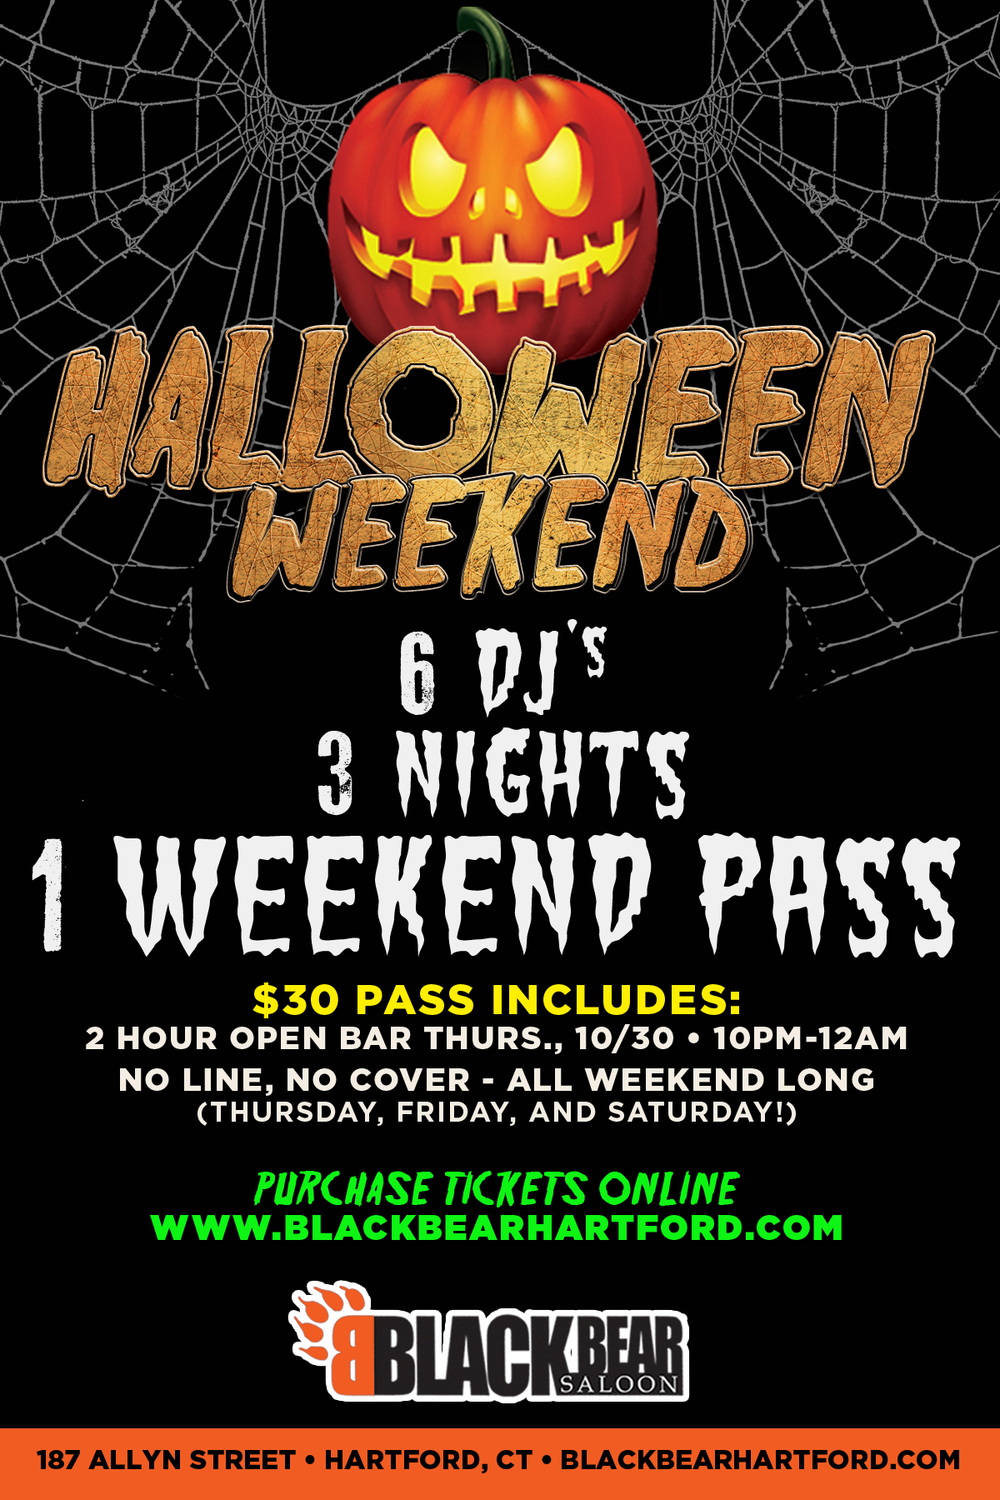 Halloween Weekend join us at Black Bear in Hartford CT.  6 DJ's, 3 Nights.  $30 Pass includes = 2 Hour Open Bar + No Cover All Weekend!  Costume Contests with $2000 in Cash & Prizes.  $3 Coors Lights, $4 UFO Pumpkin Drafts.  SATURDAY, NOV. 1ST GLOW INSANE PARTY! JONESY + SCOTTY STYLES